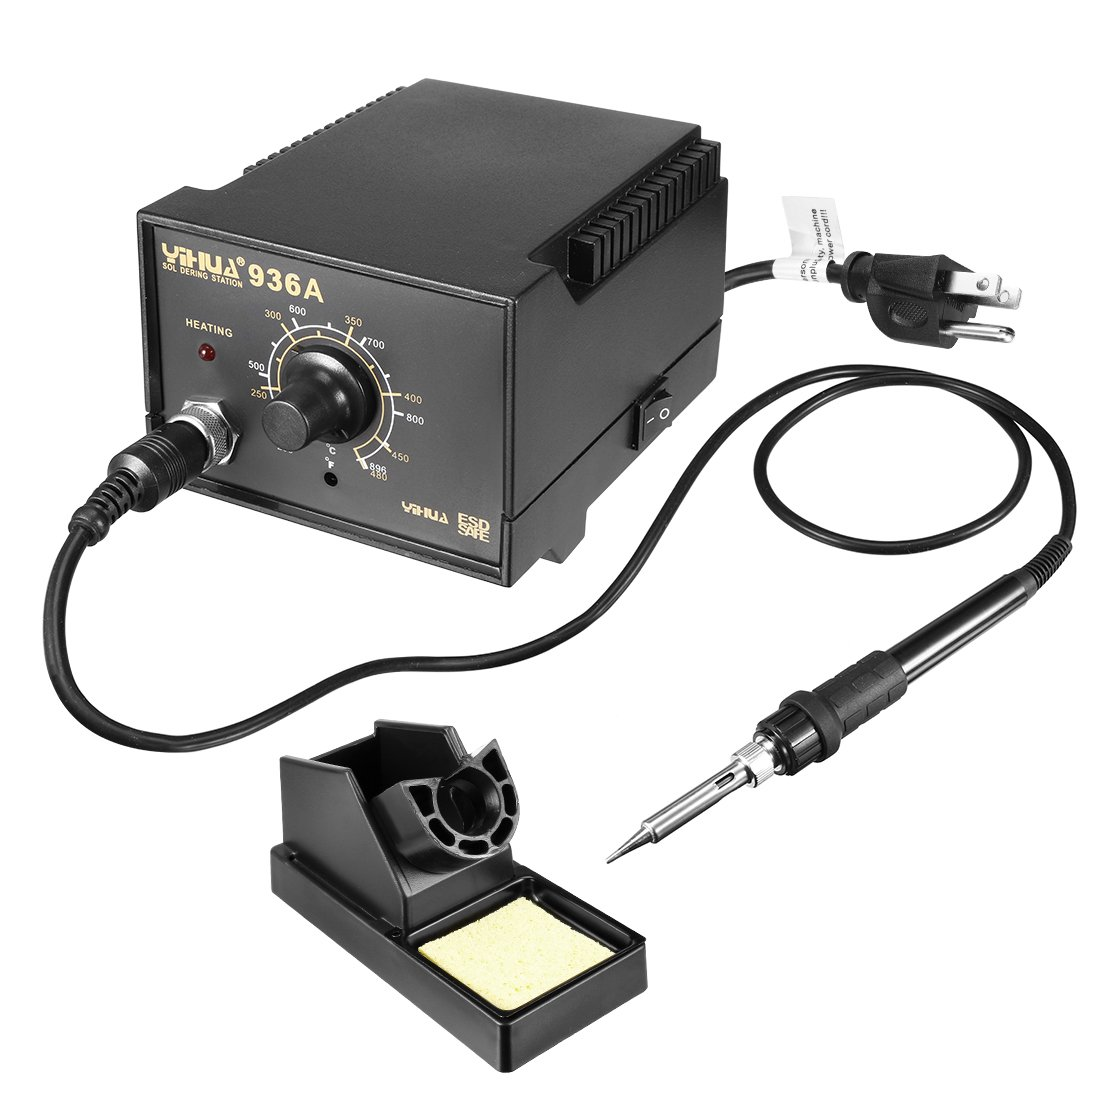 uxcell Model 936A US Plug 60-Watt Soldering Iron Station Kit with Auto Cool Down Function, Ergonomic Soldering Iron, Solder Holder, Soldering Tips, Soldering Wire and Tweezer by uxcell (Image #1)